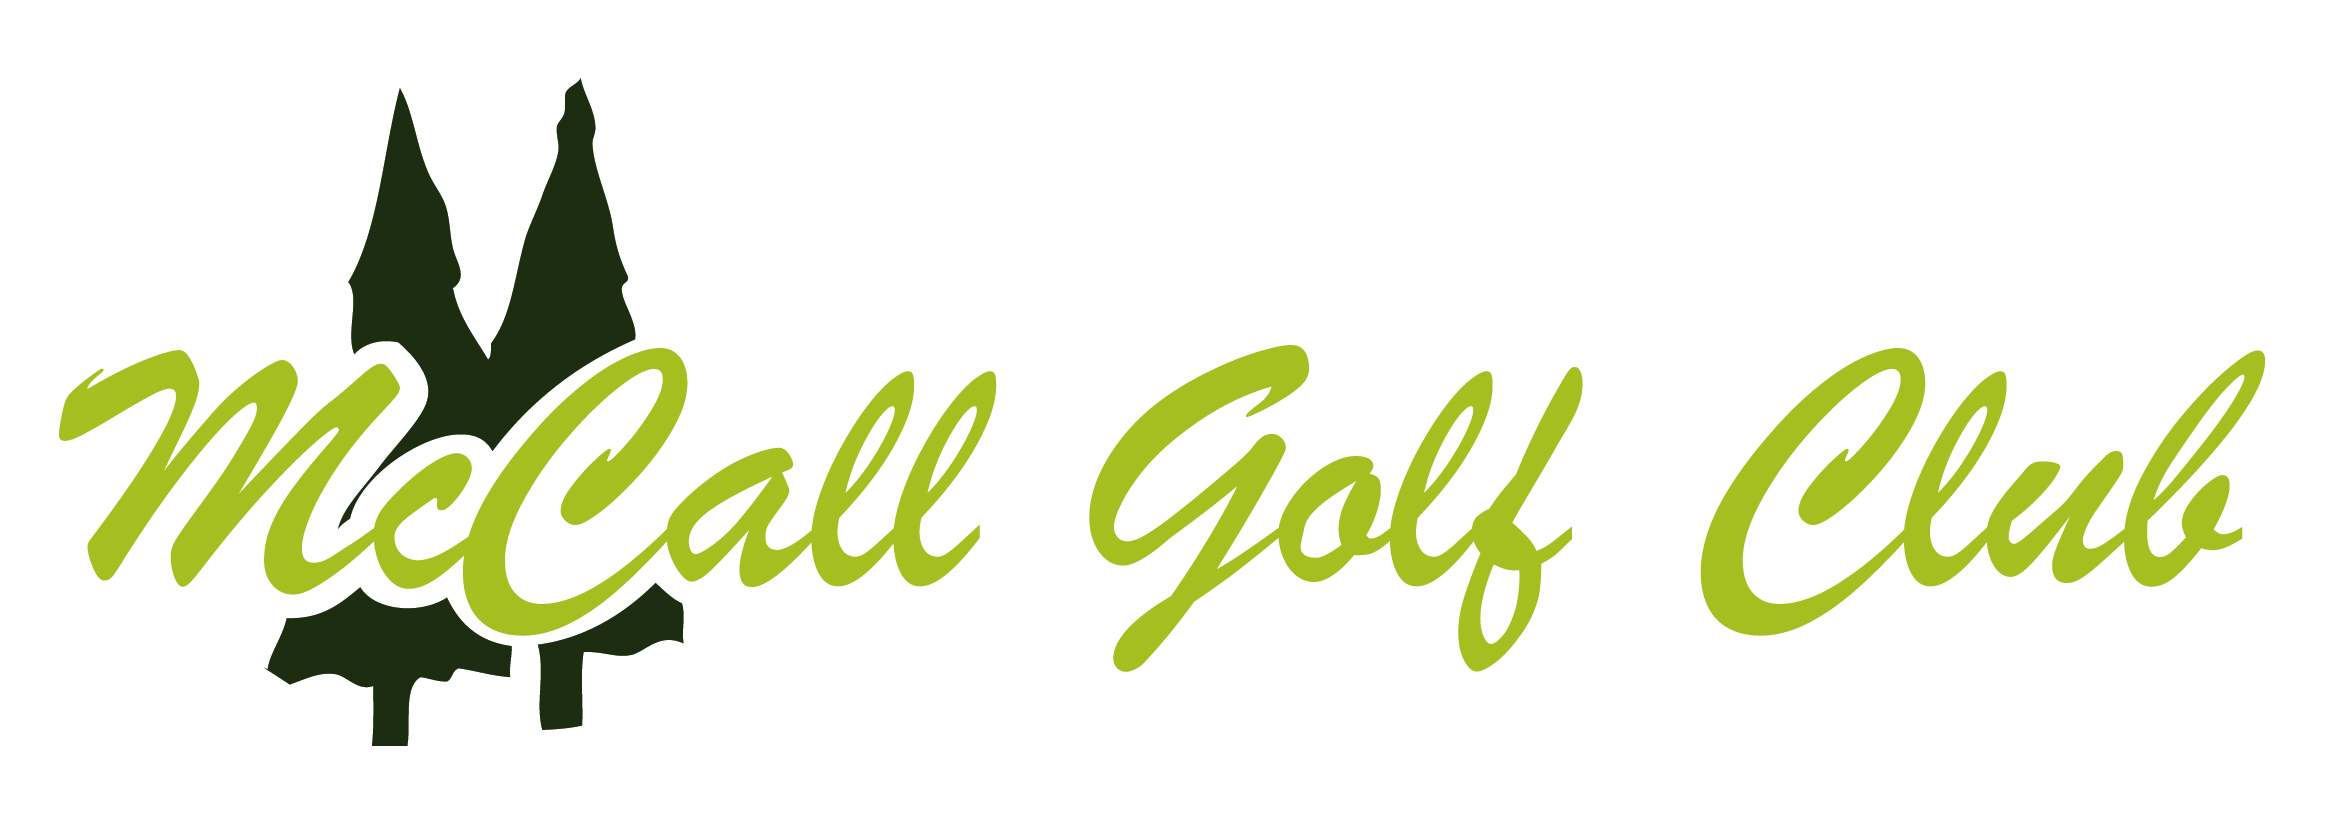 Official Website of McCall, Idaho Golf Course